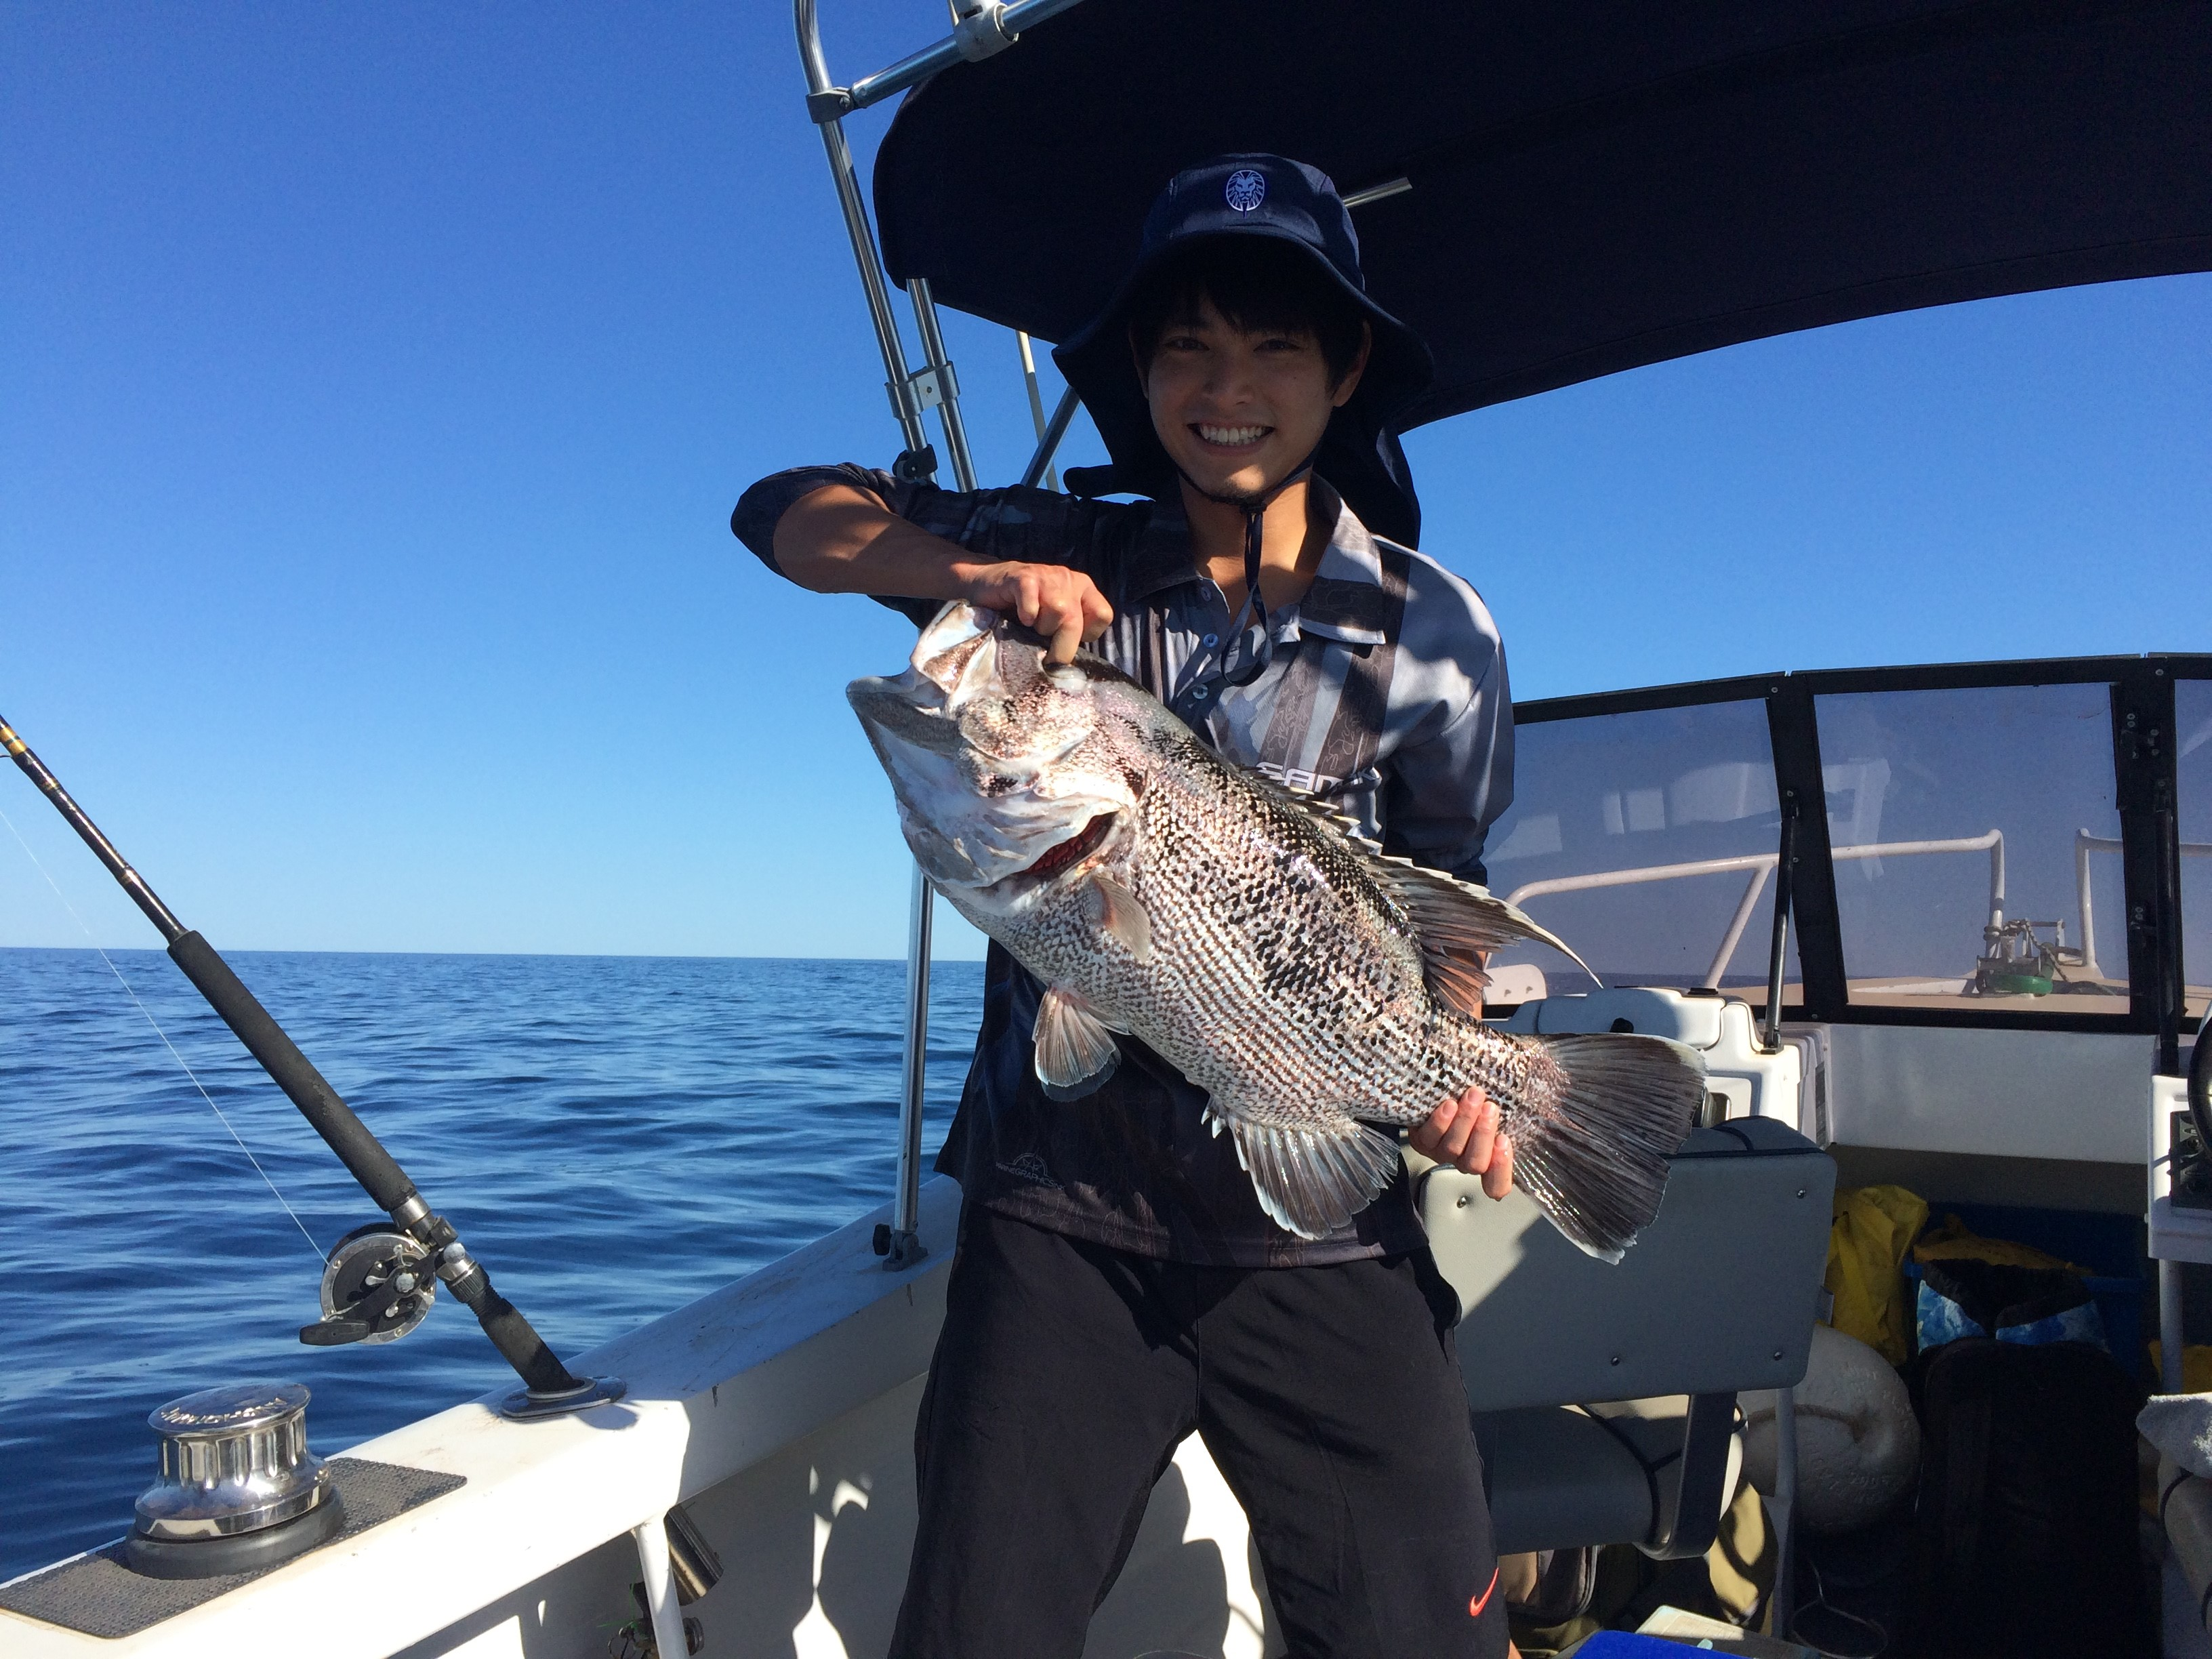 Fishing Report for the Geraldton Region 15th February 2017